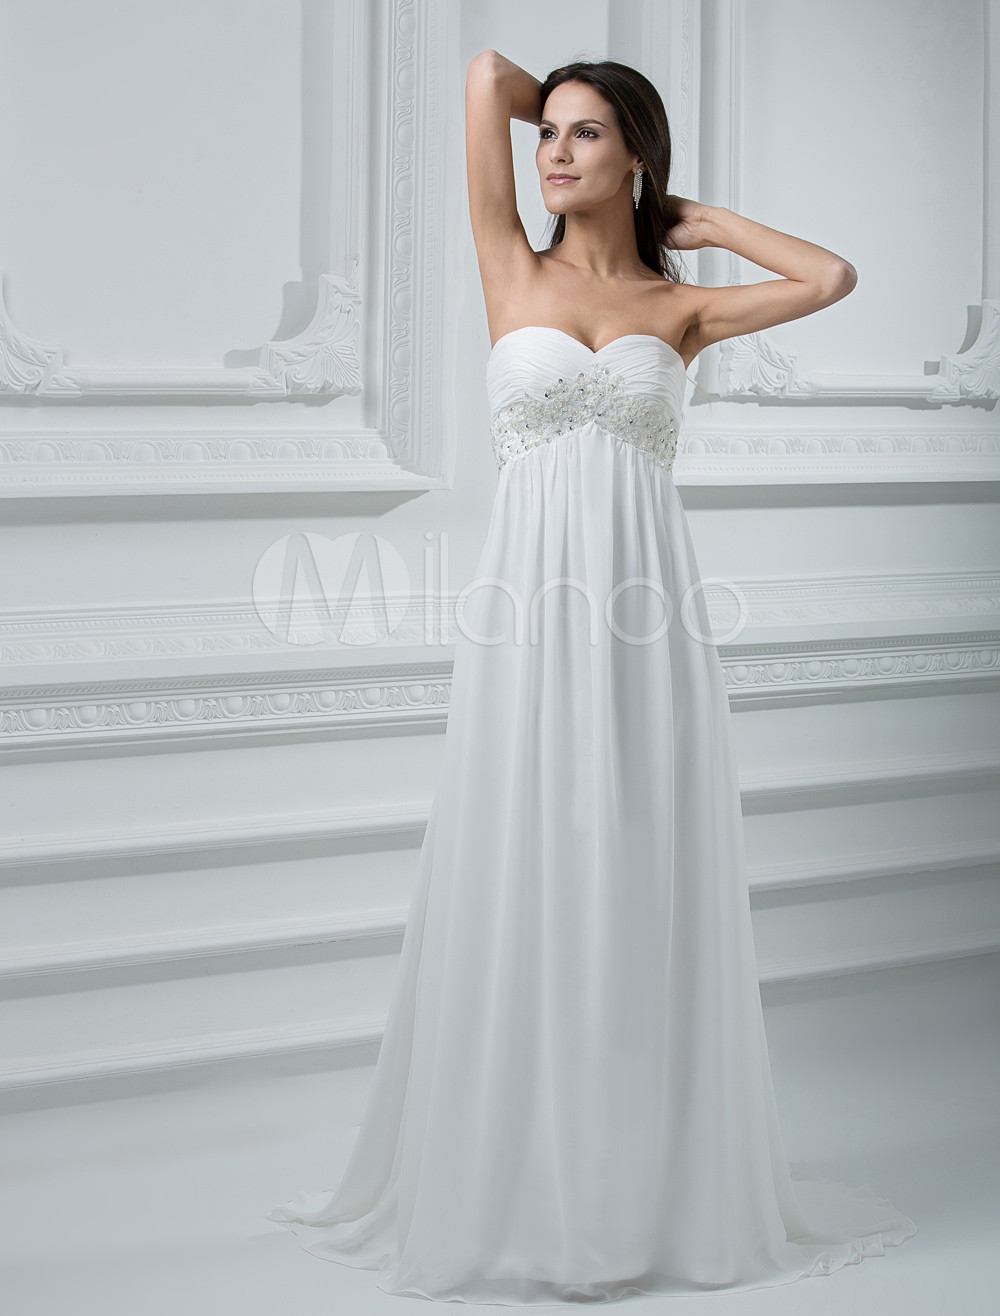 Strapless Empire Waist Wedding Dress